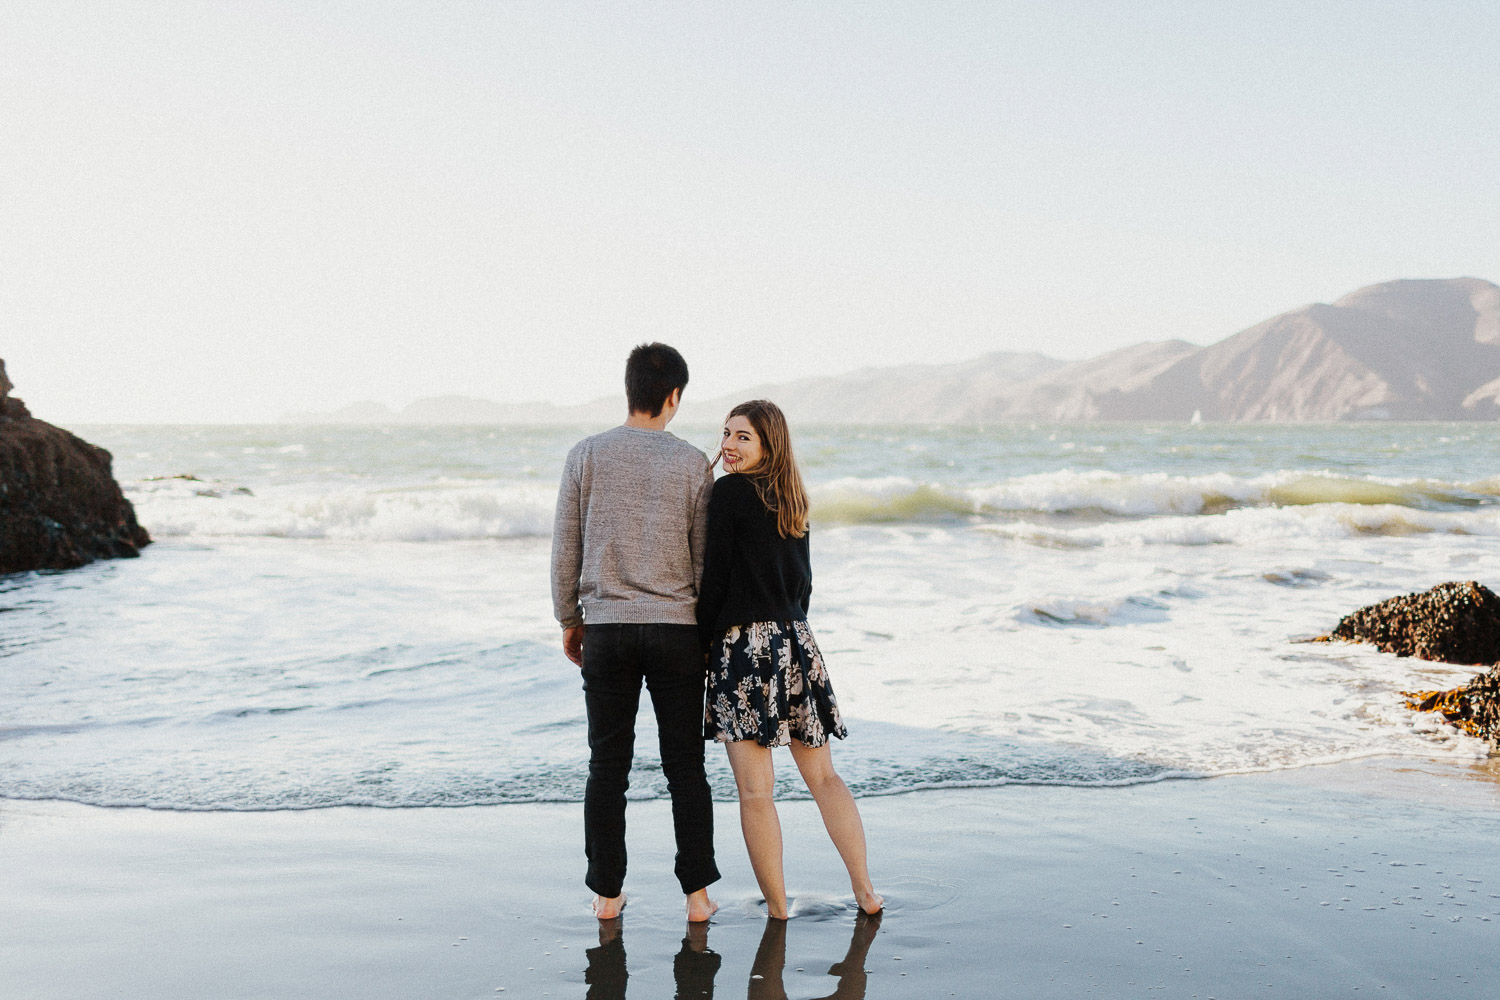 Image of couple stand together on beach